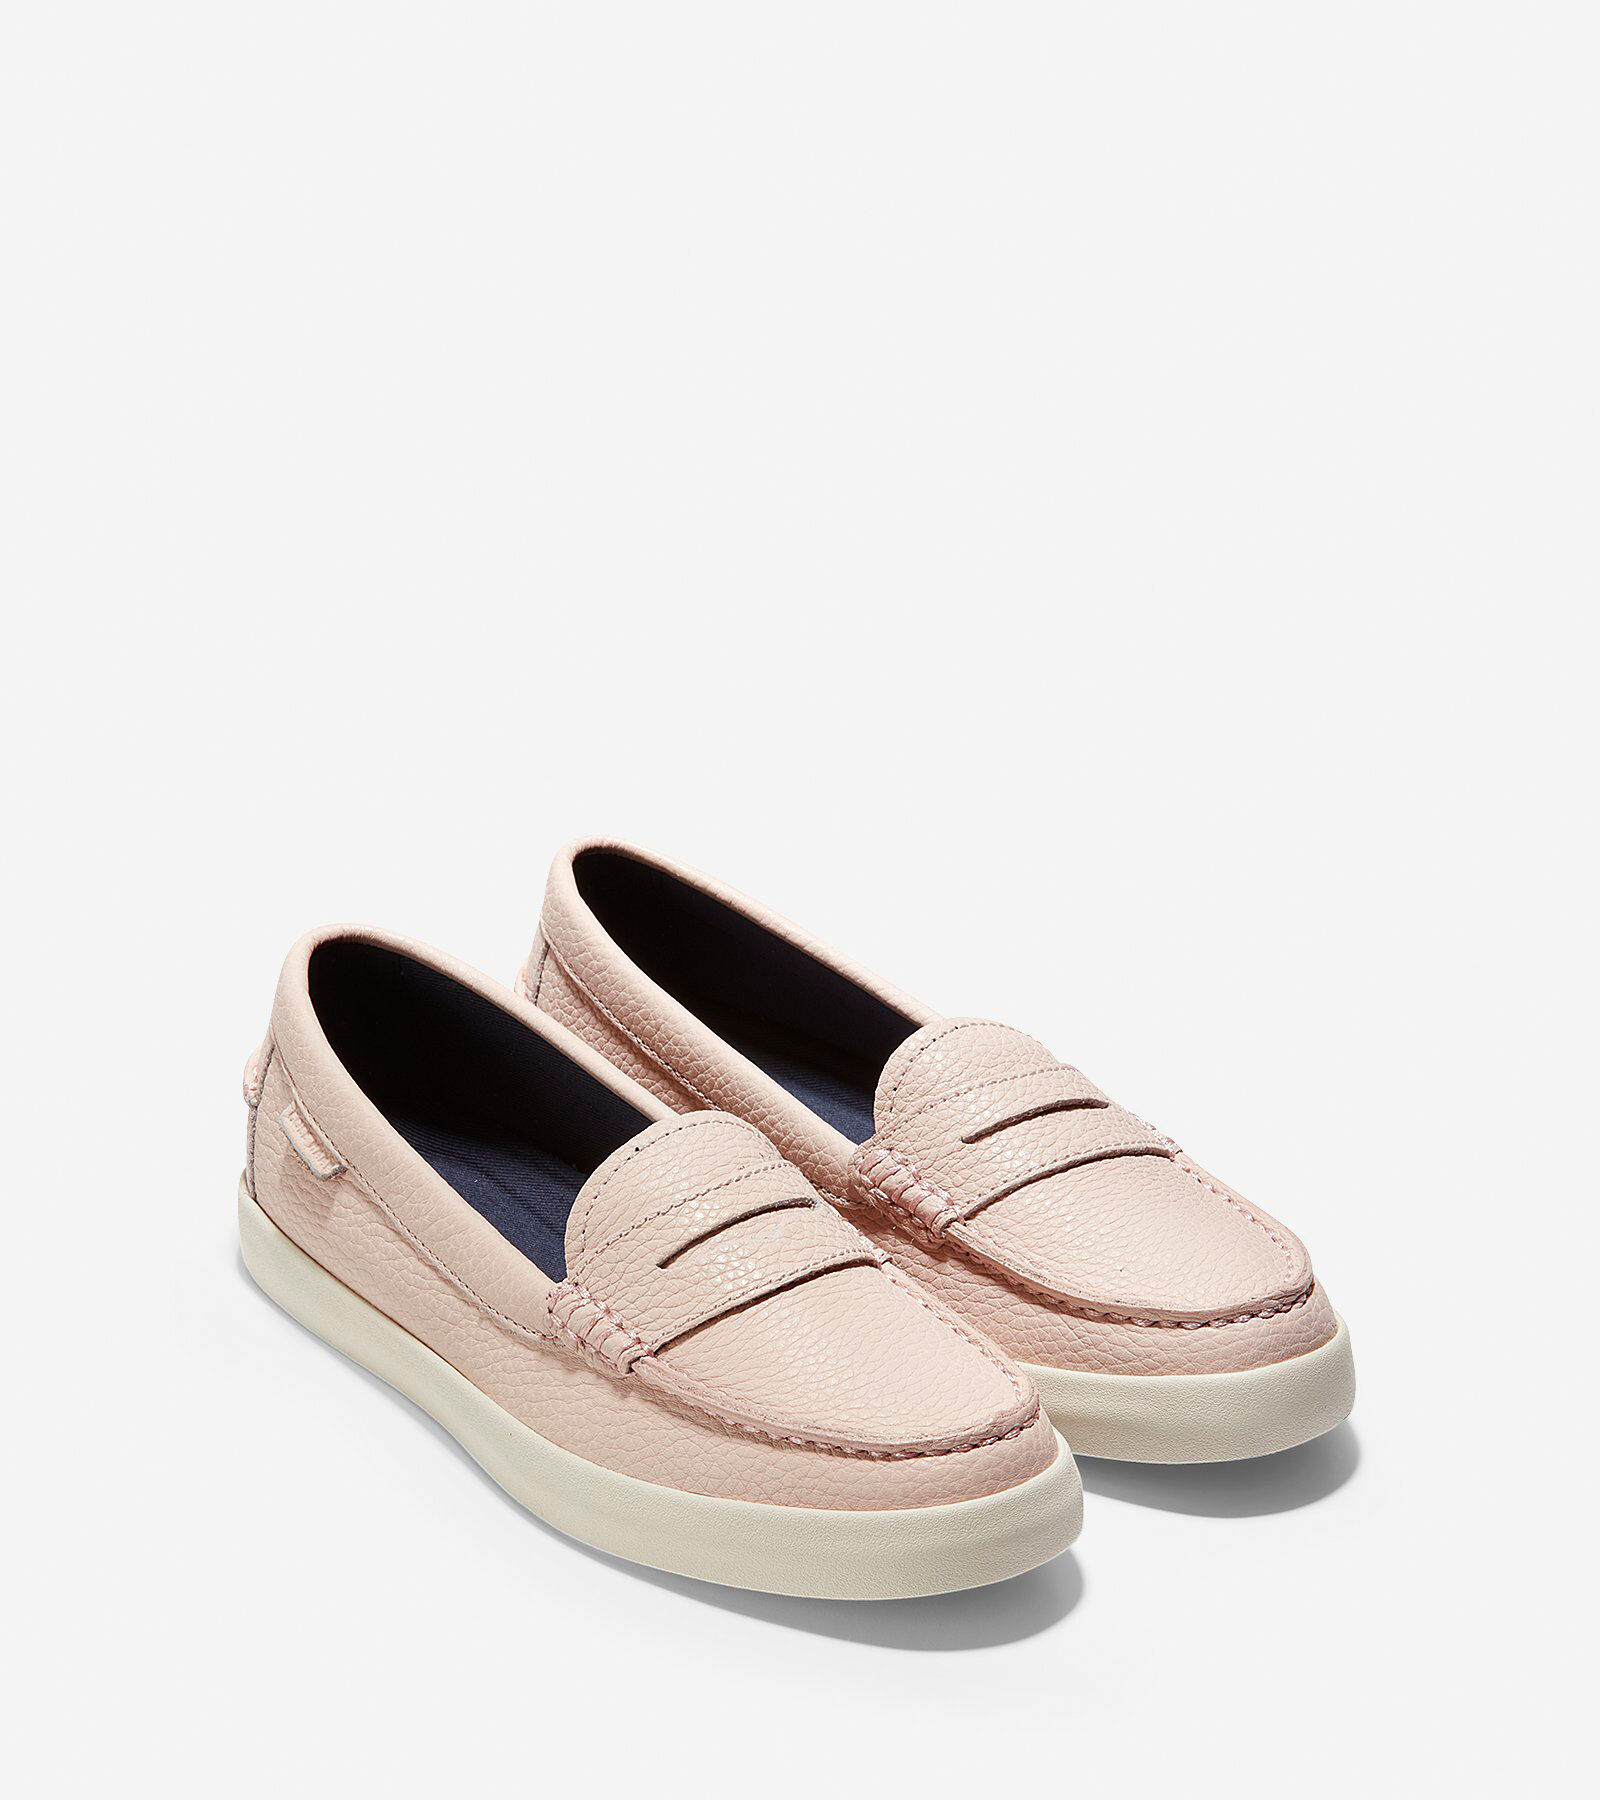 Cole Haan Nantucket Loafer yZfPDjctCC